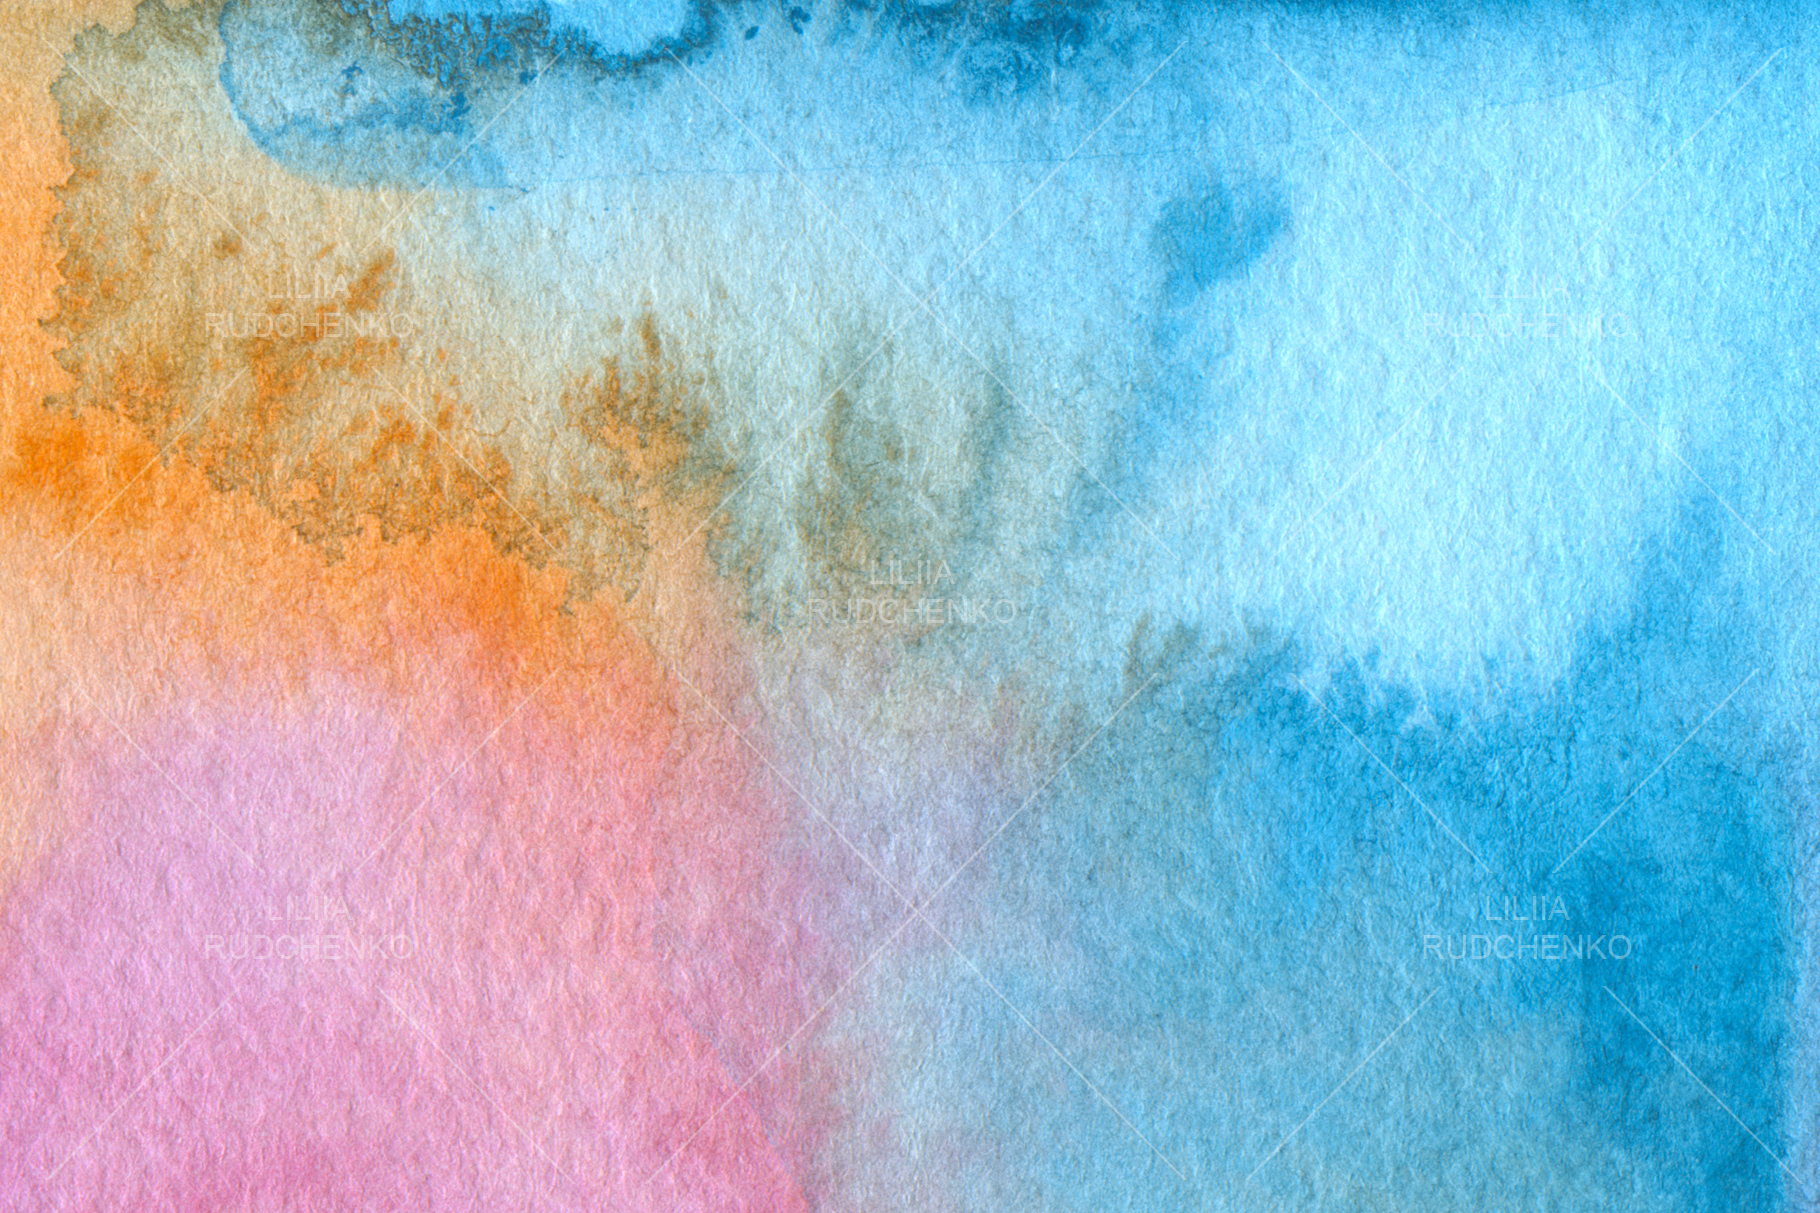 Abstract acrylic and watercolor painted background. Texture